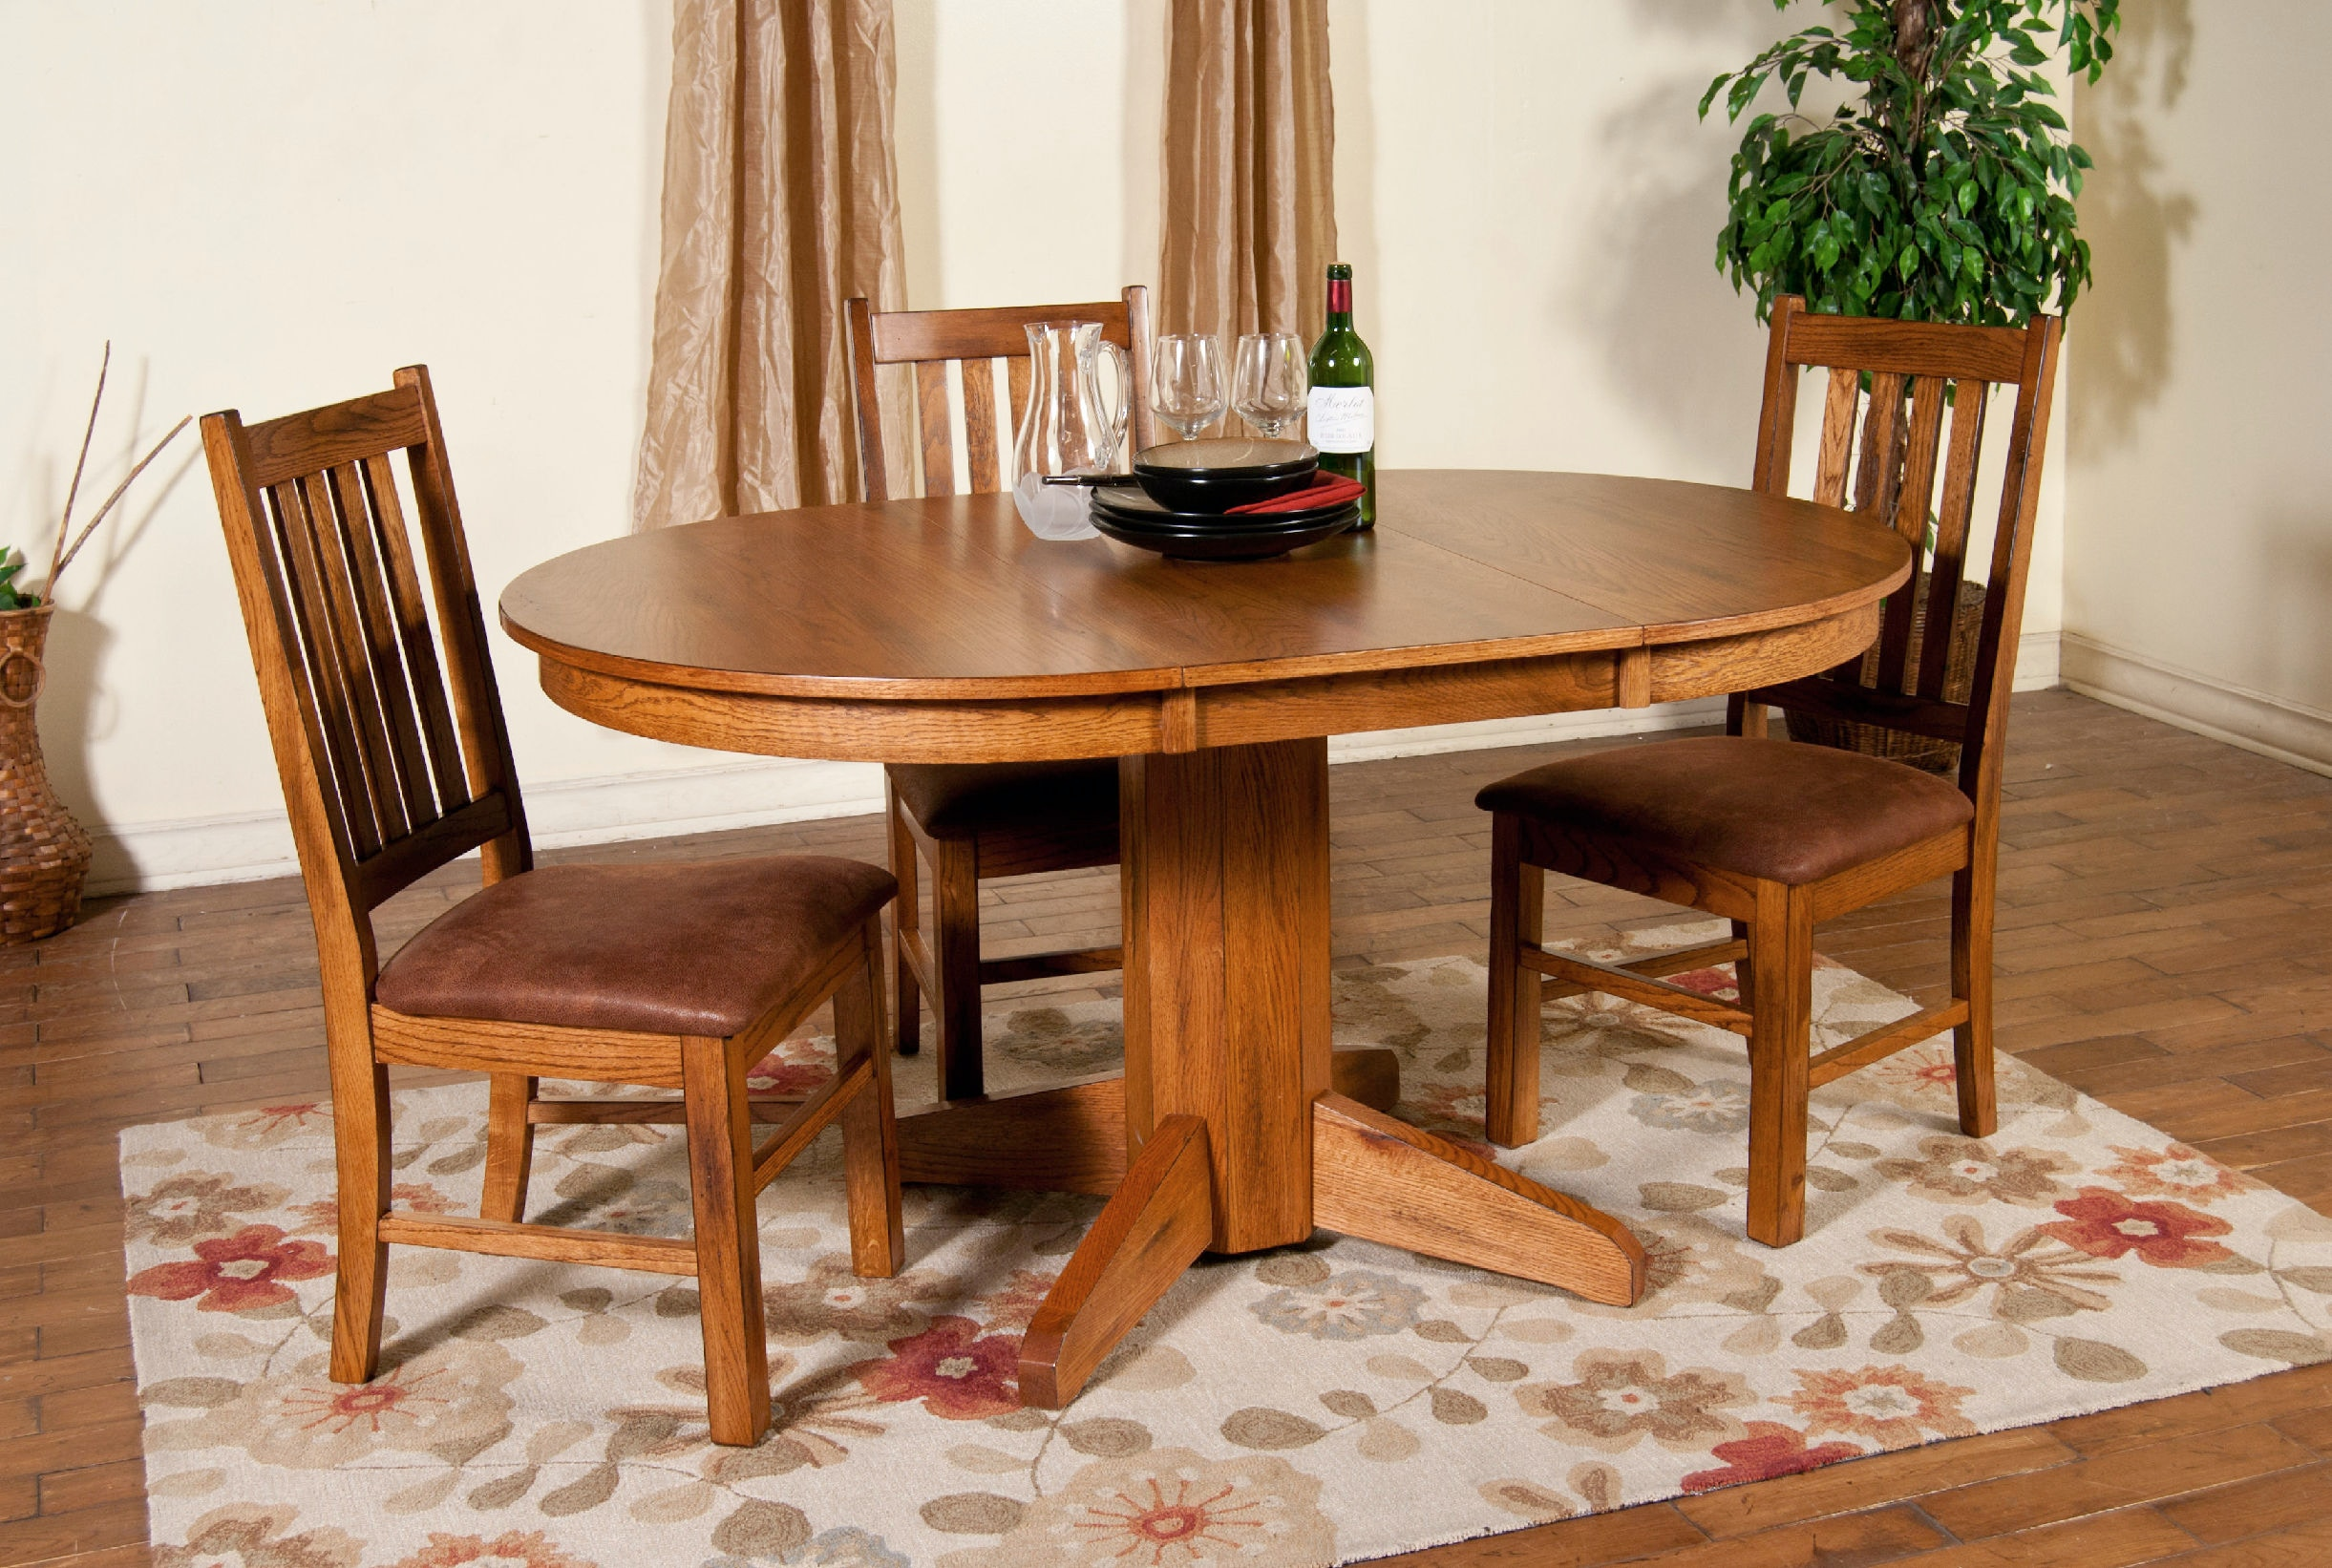 Sunny Designs Dining Room Sedona Oval Extension Table